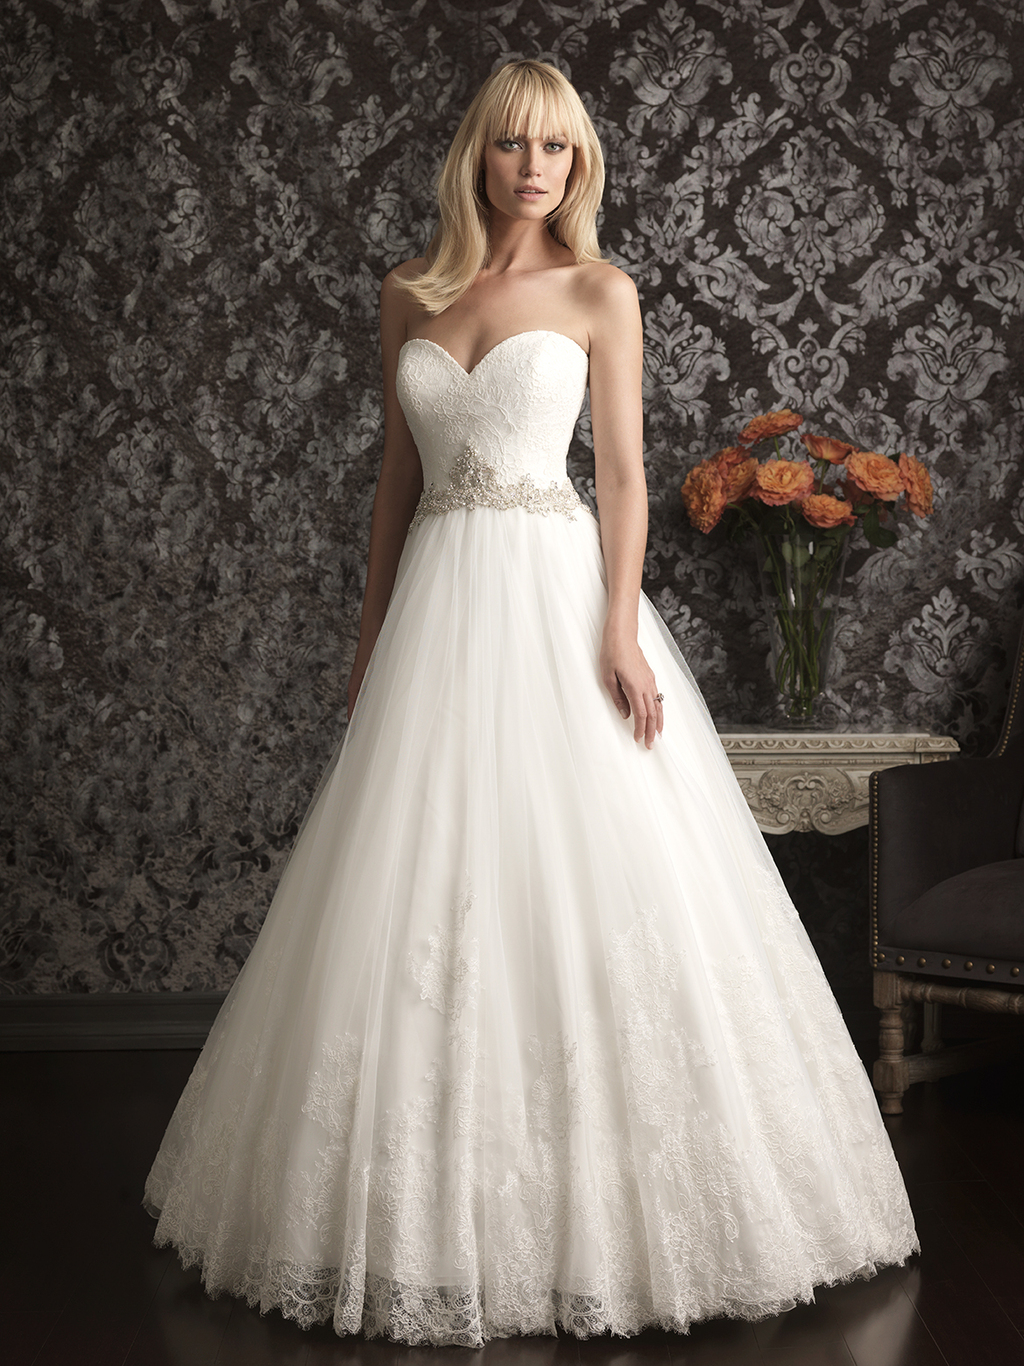 Allure-bridals-wedding-dress-bridal-gown-allure-collection-2013-9014f.full